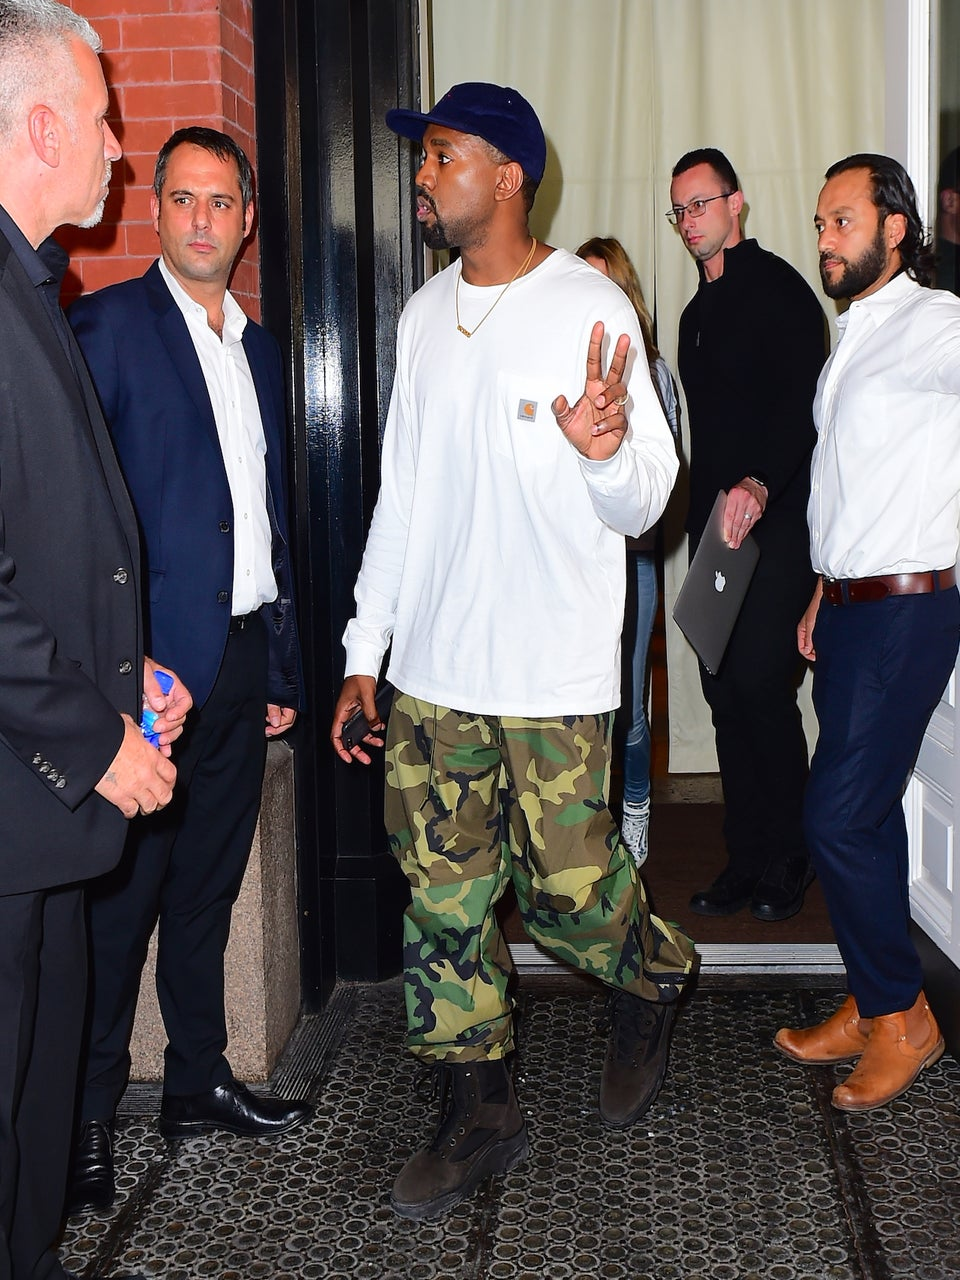 Kanye West 911 Call Released: 'I Think He's Definitely Going To Need To Be Hospitalized'